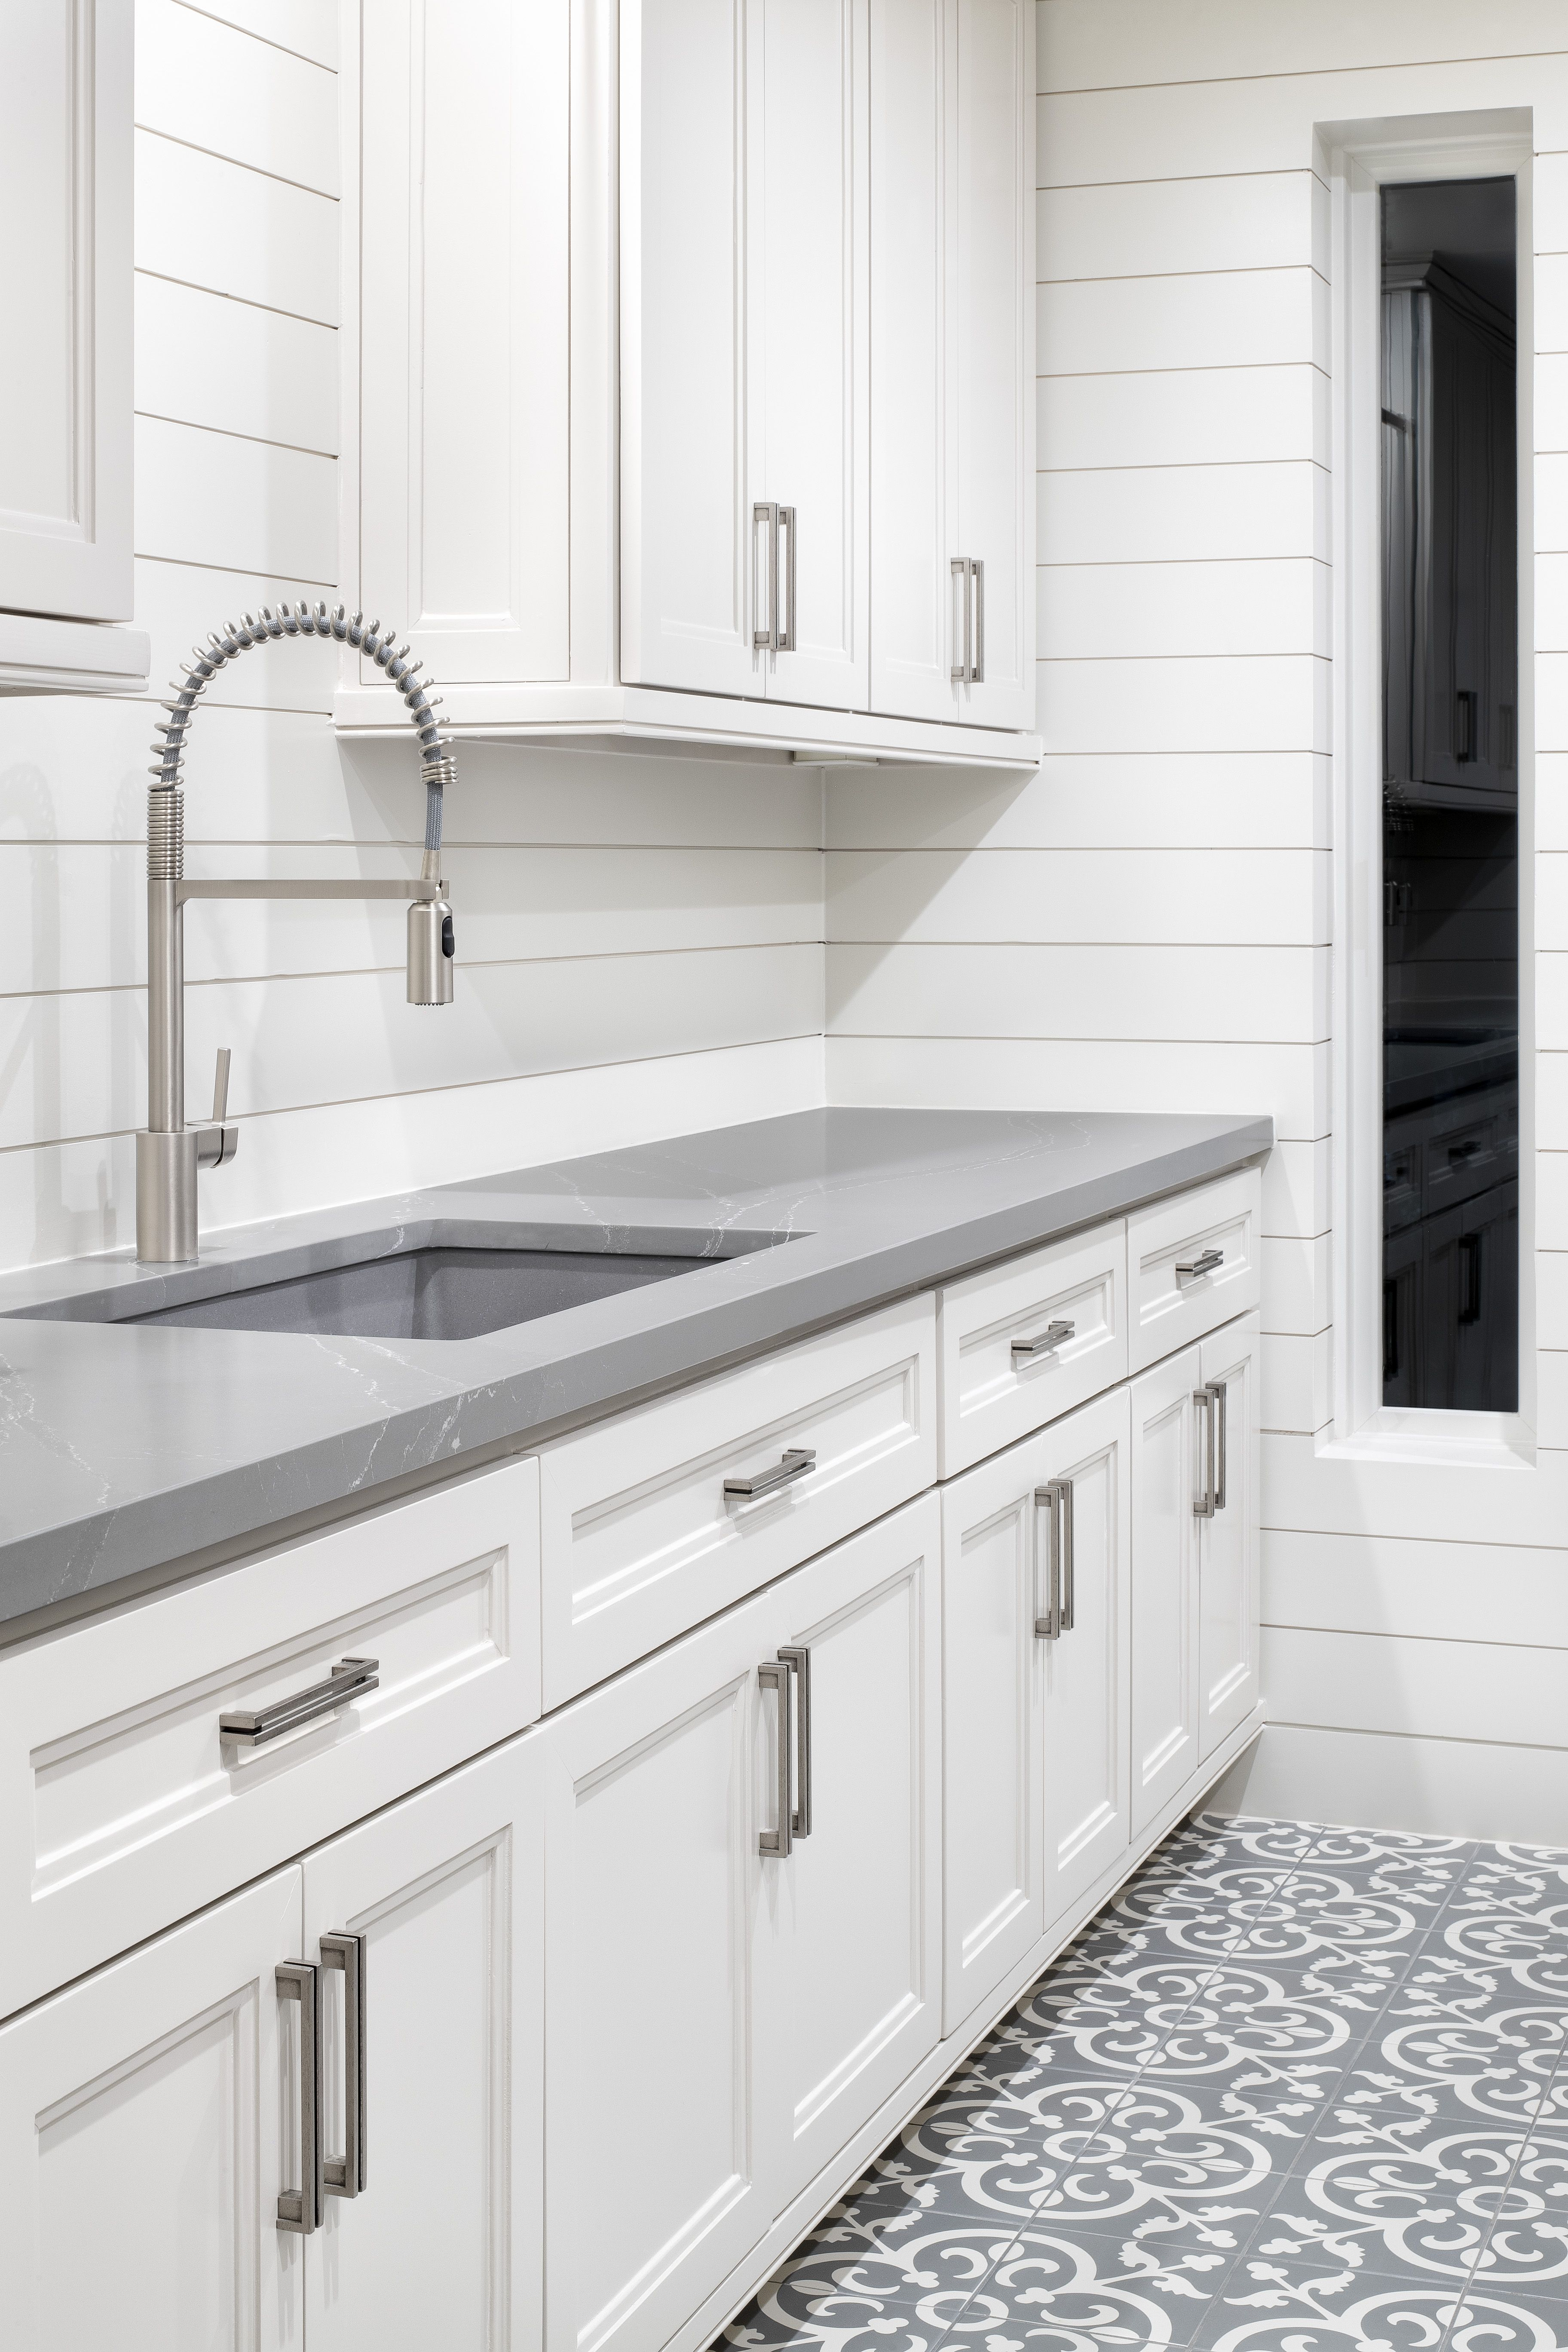 A Modern Farmhouse Utility Room In Austin Texas In 2020 Grey Kitchen Floor Gray Kitchen Countertops Kitchen Cabinets Grey And White